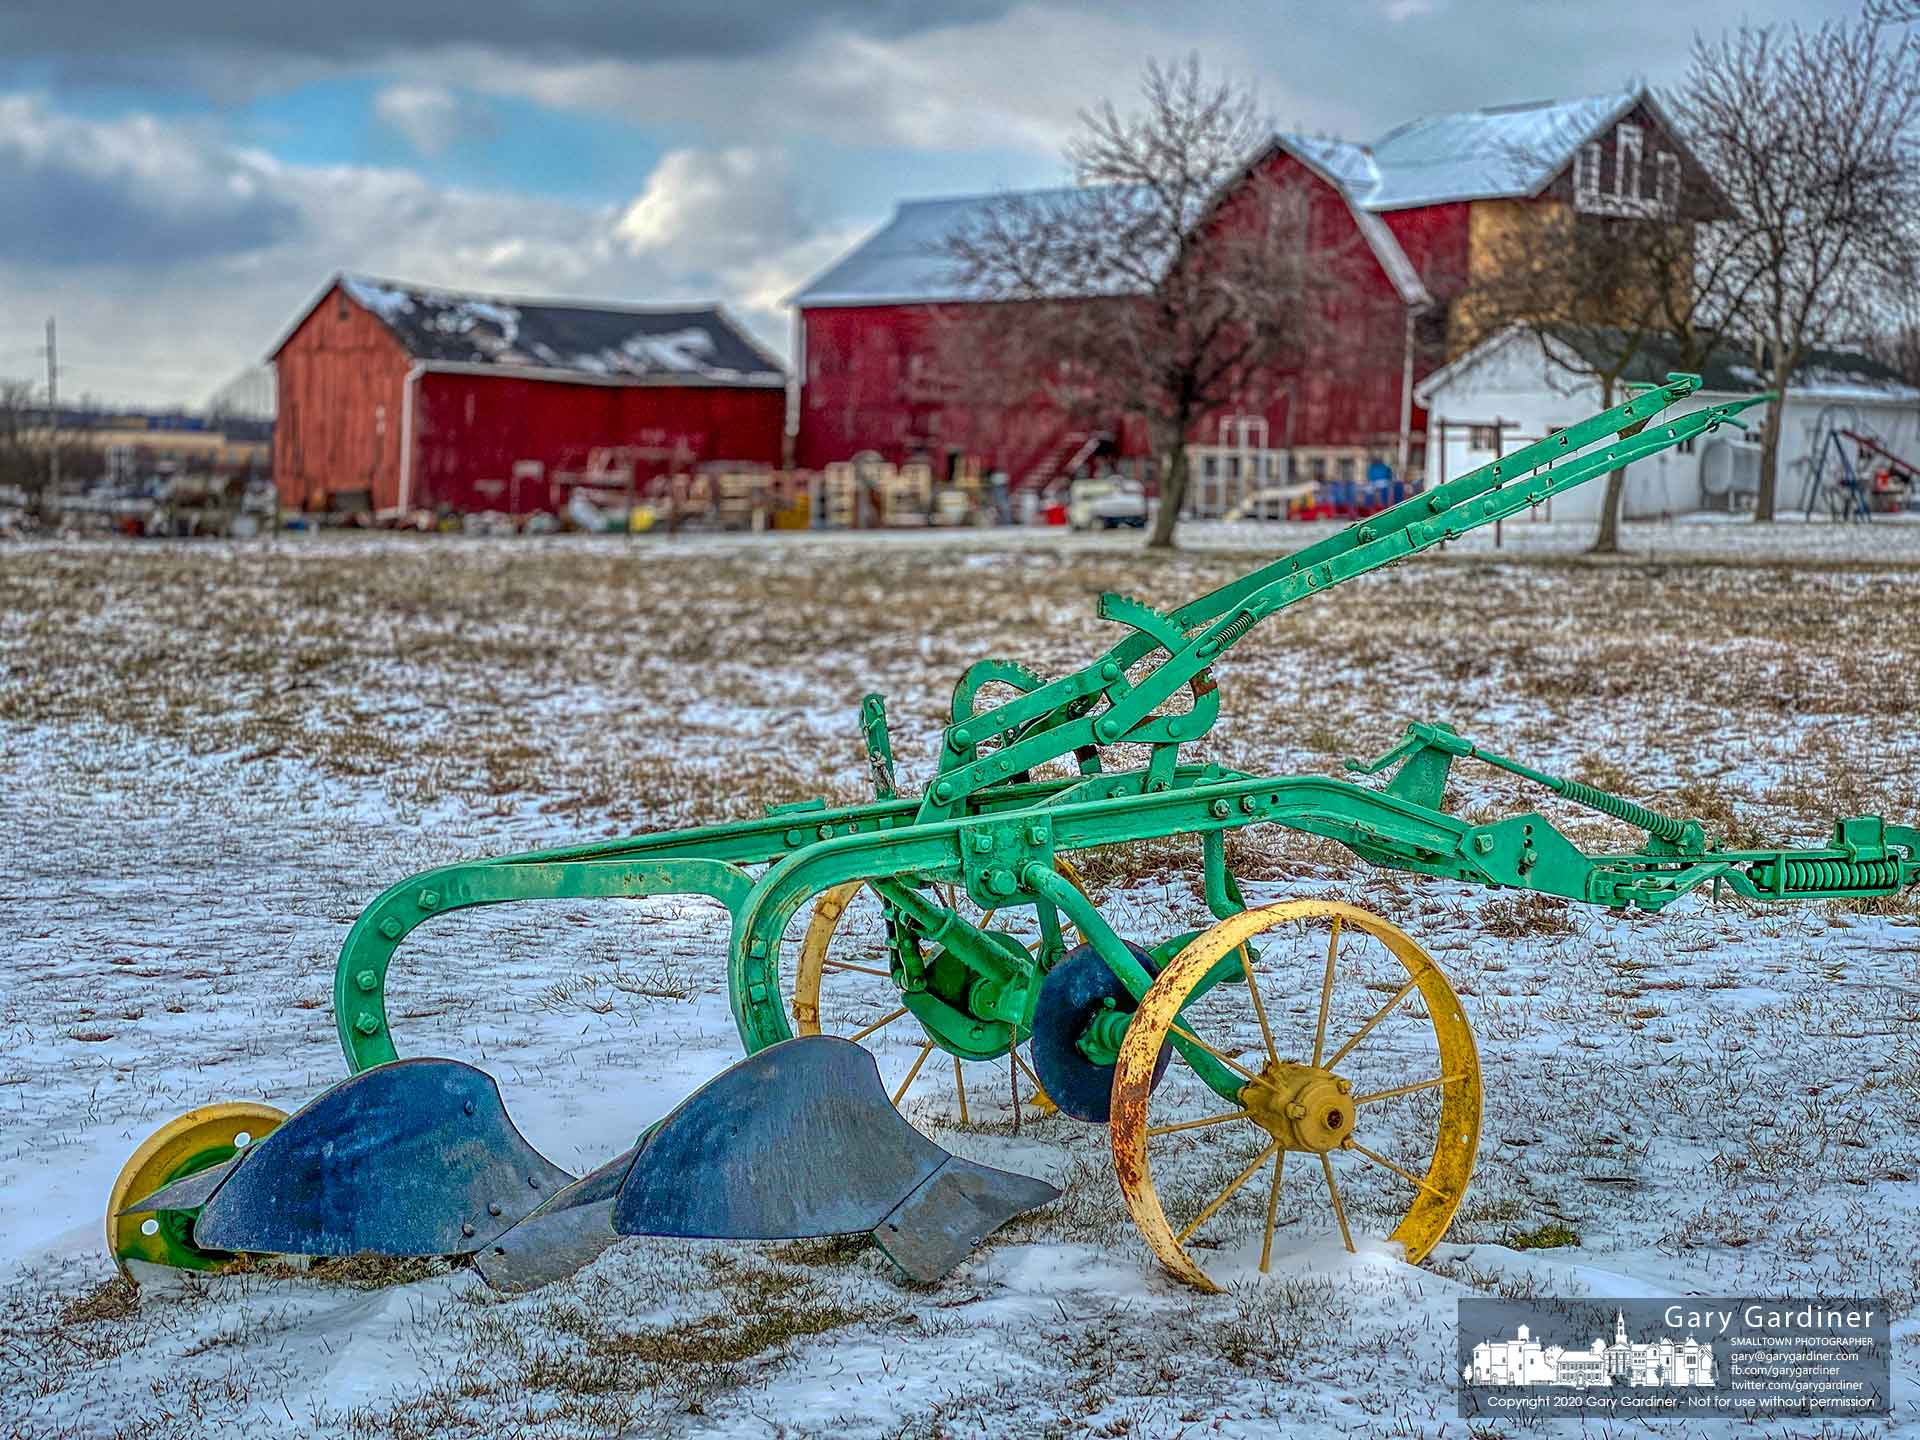 An antique plow sits in a dusting of snow on a small garden patch at the Yarnell Farm on Africa Road. My Final Photo for Feb. 27, 2020.